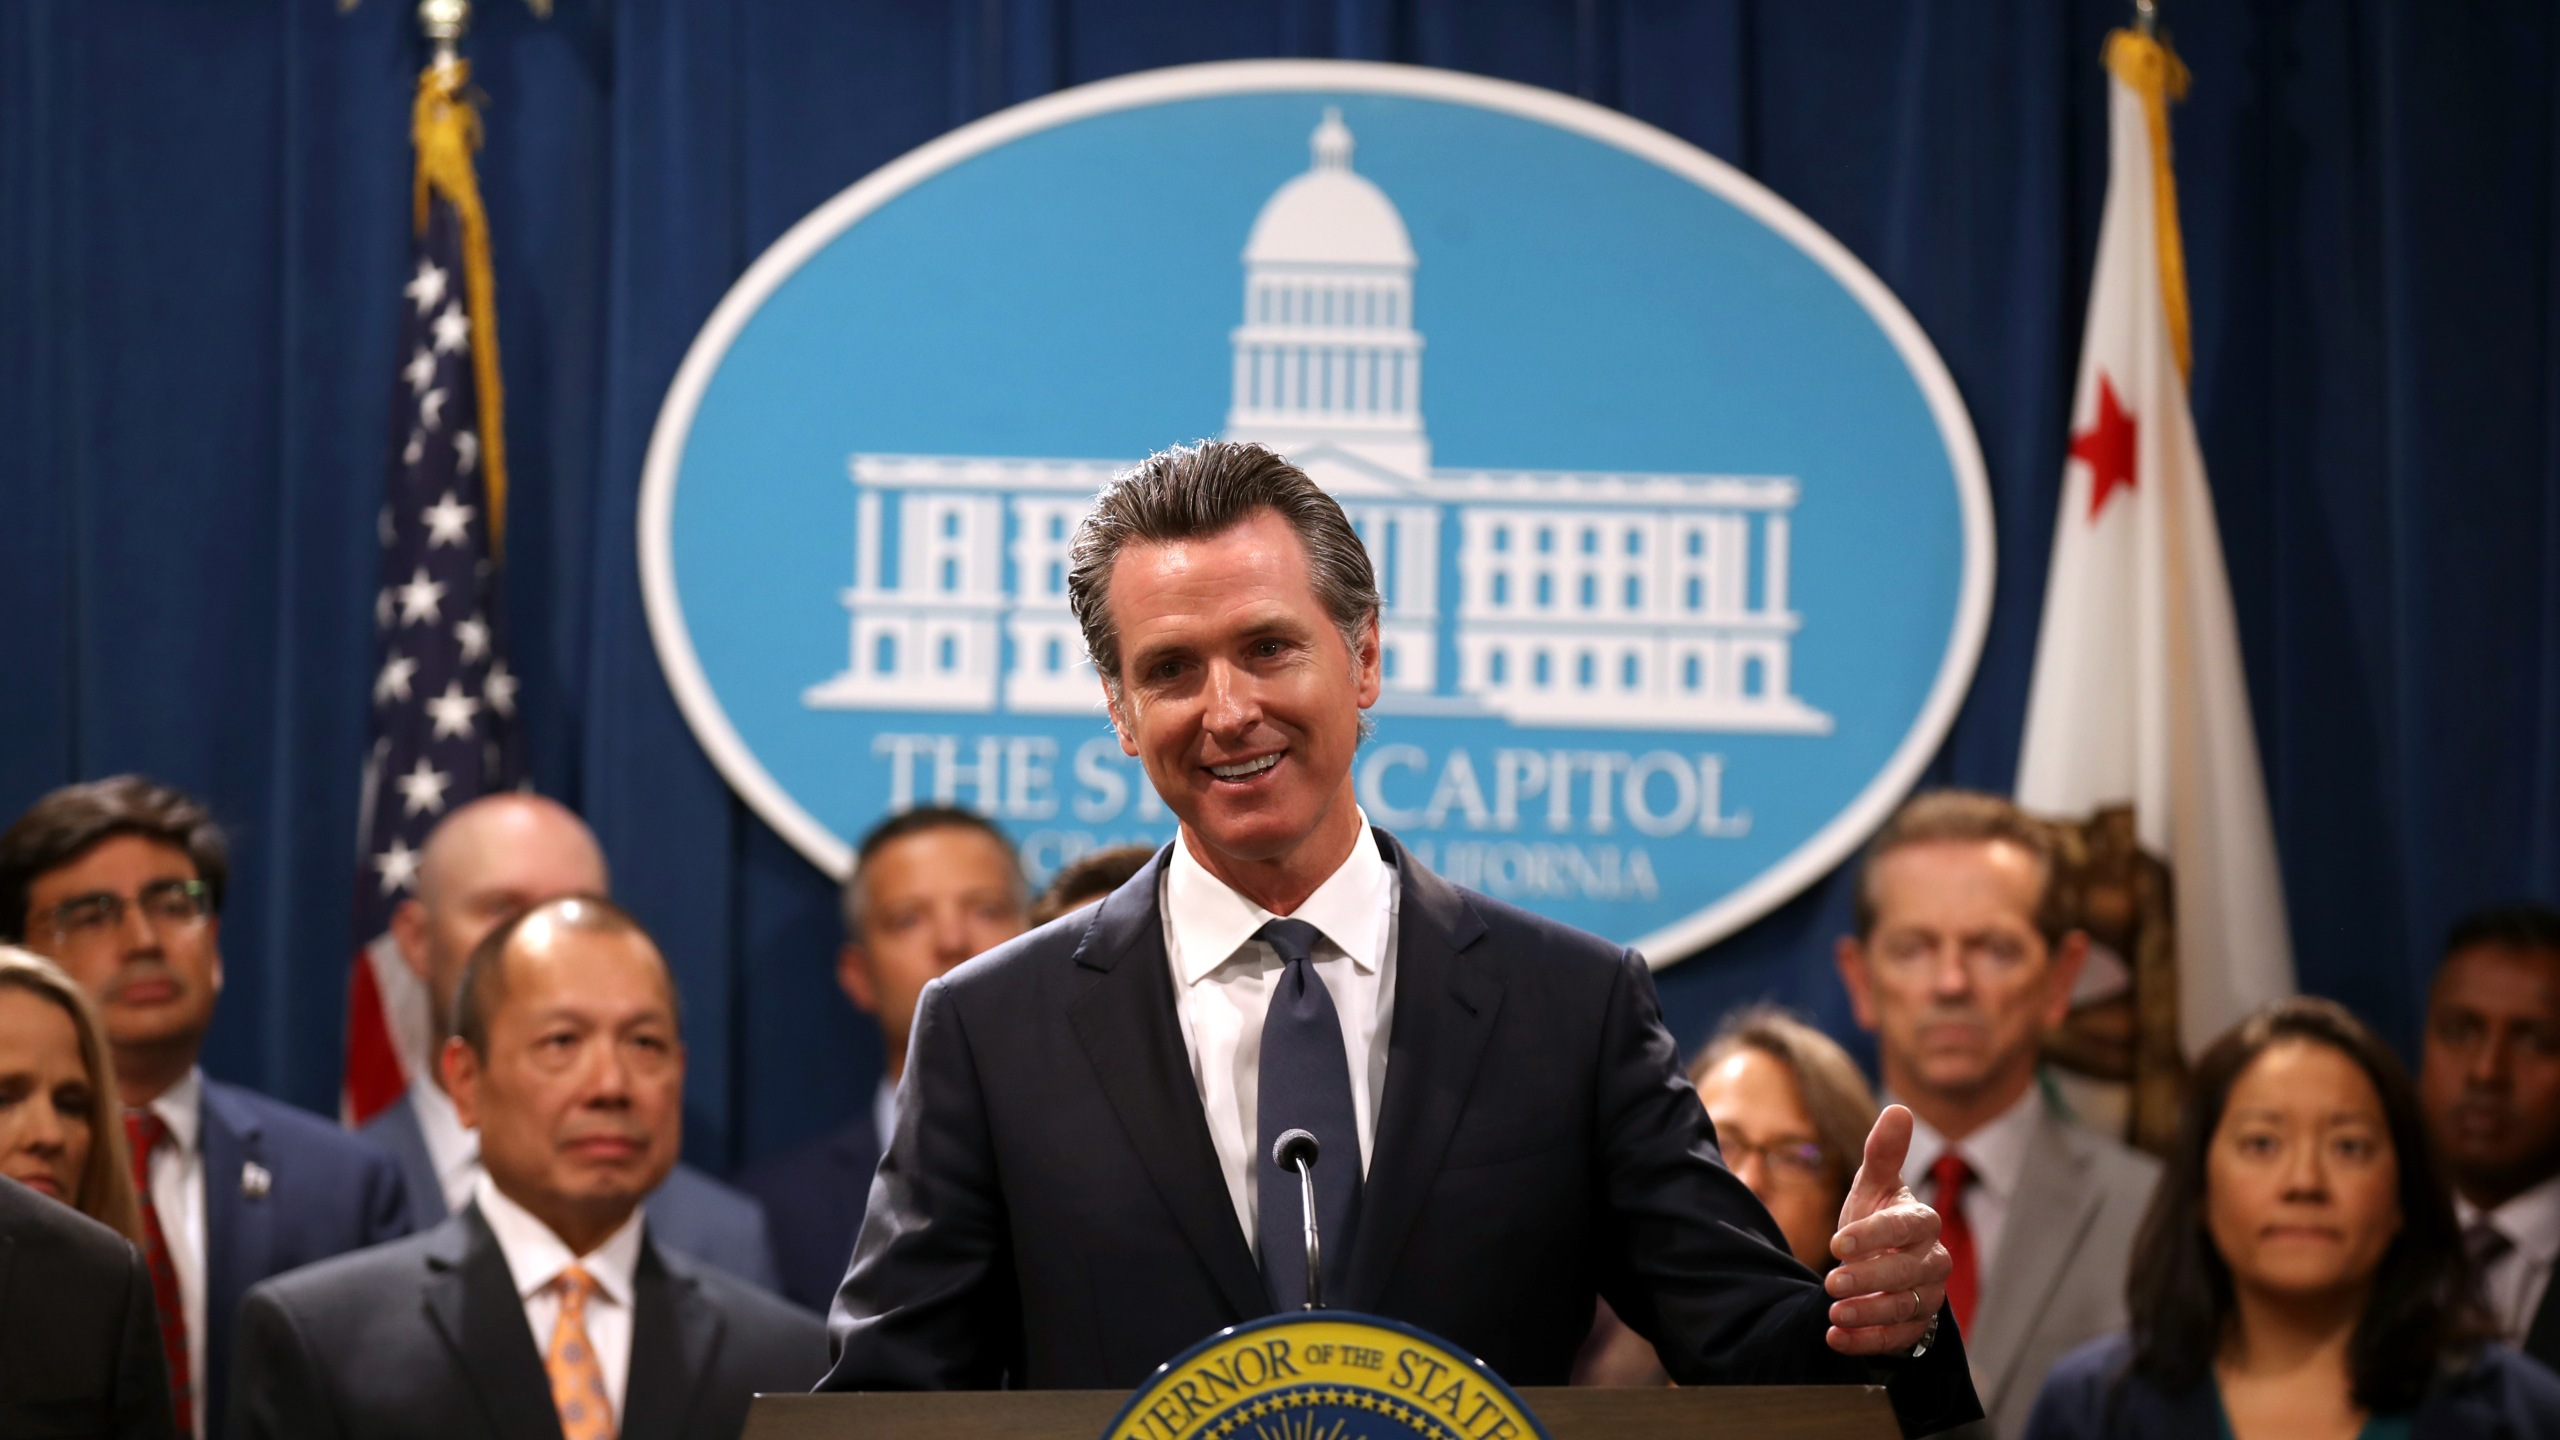 Gov. Gavin Newsom speaks during a news conference with Attorney General Xavier Becerra at the Capitol in Sacramento on Aug. 16, 2019. (Credit: Justin Sullivan / Getty Images)